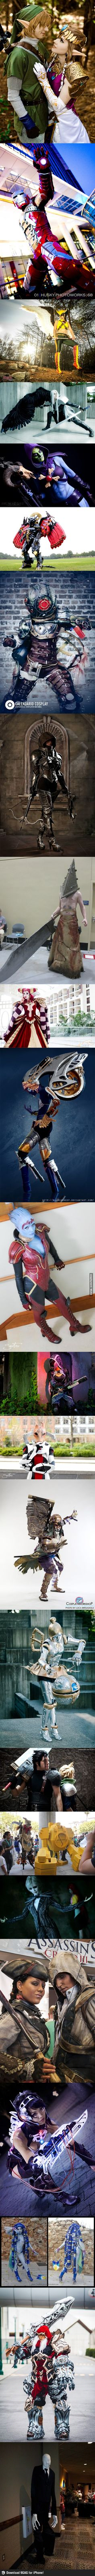 Best cosplays of the year!